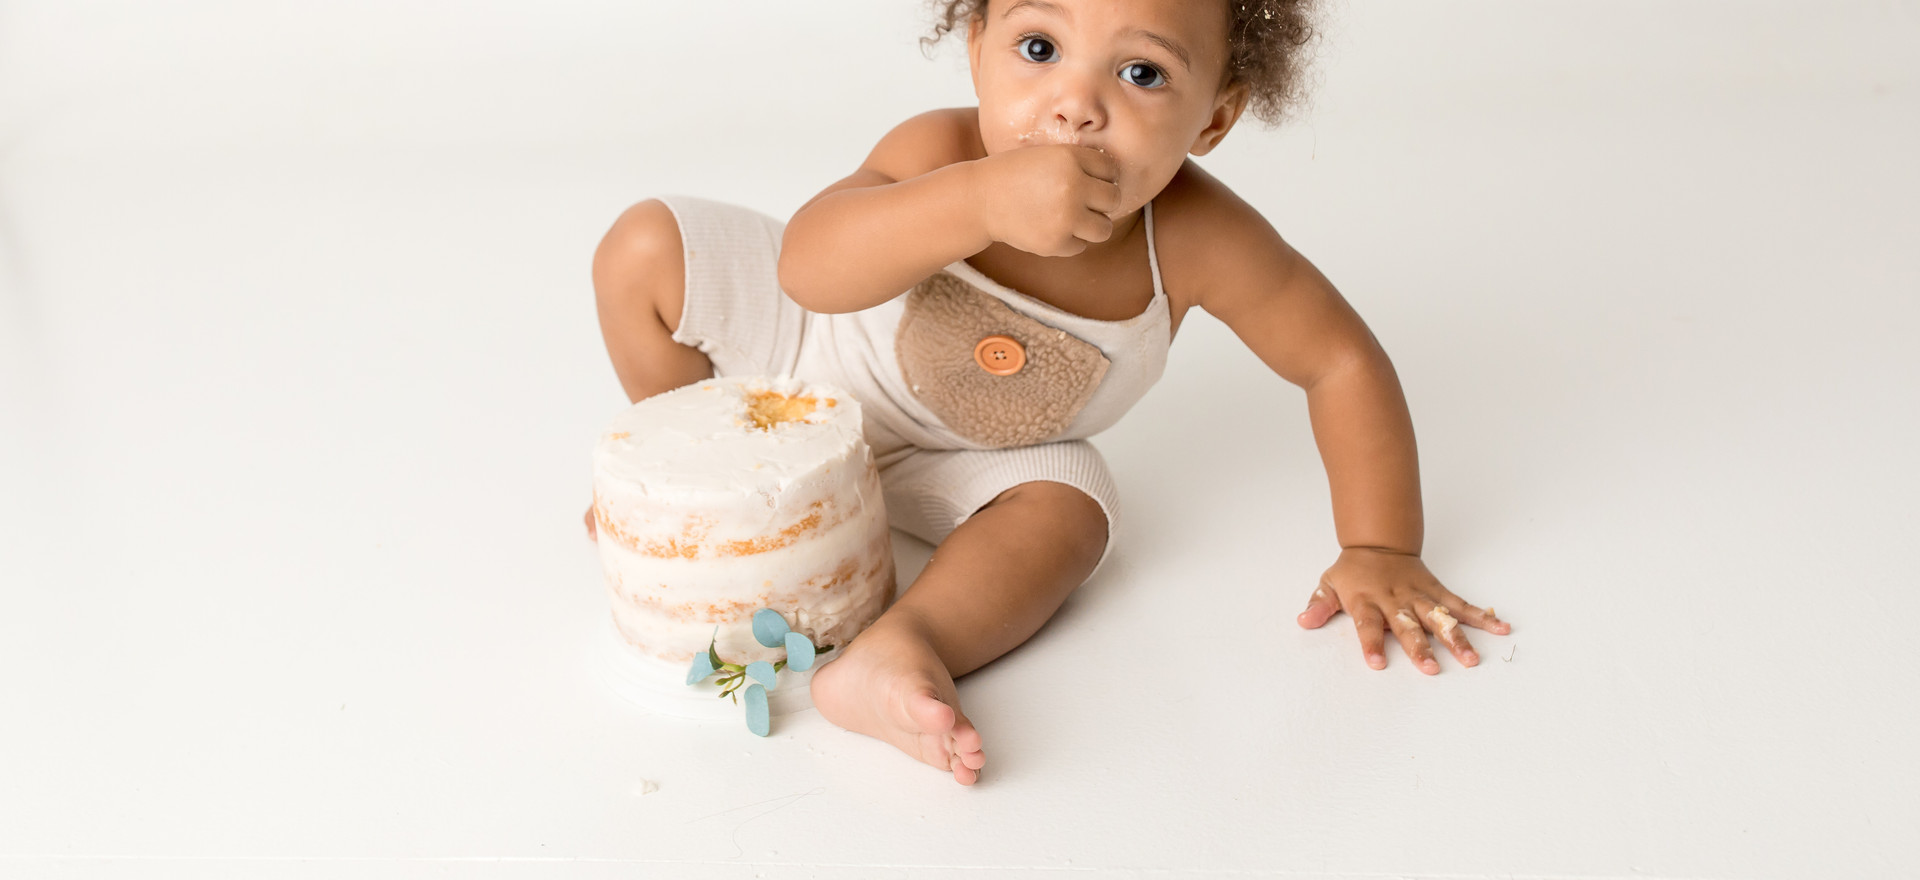 Cake Smash Baby Photography by Kelli Willoughby